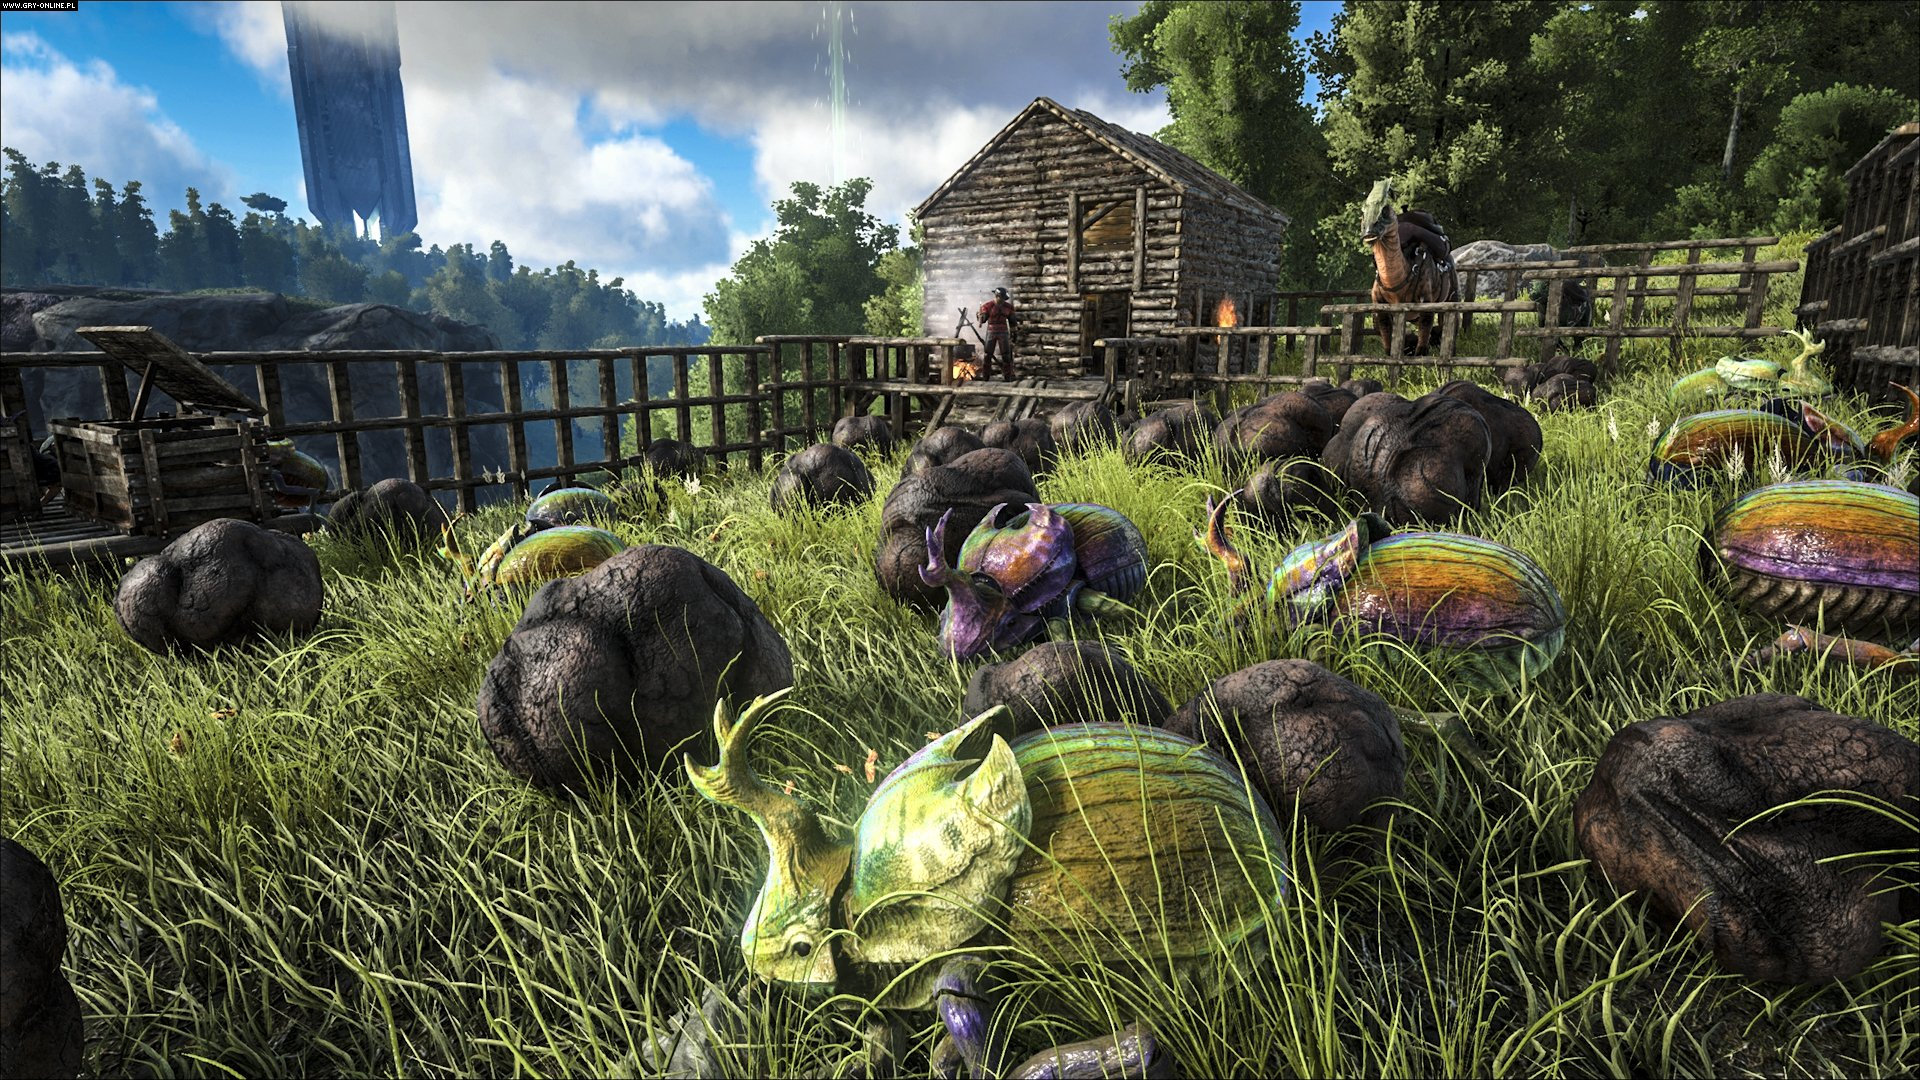 ARK: Survival Evolved PC, PS4, XONE, Switch Gry Screen 97/148, Studio Wildcard